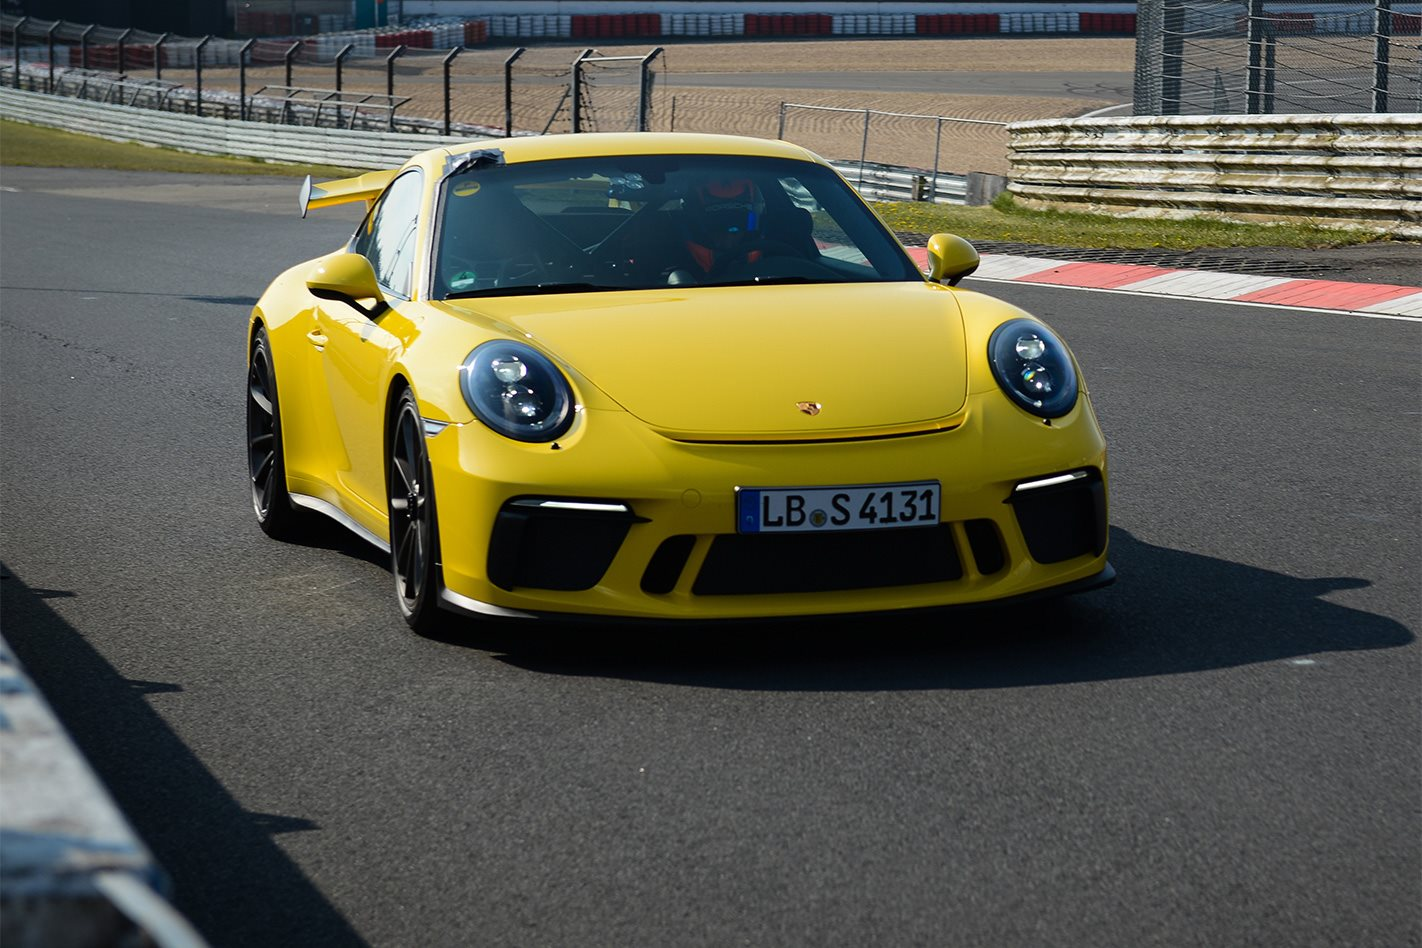 2019 Porsche 911 Gt3 Rs Nurburgring Lap Time ✓ Porsche Car